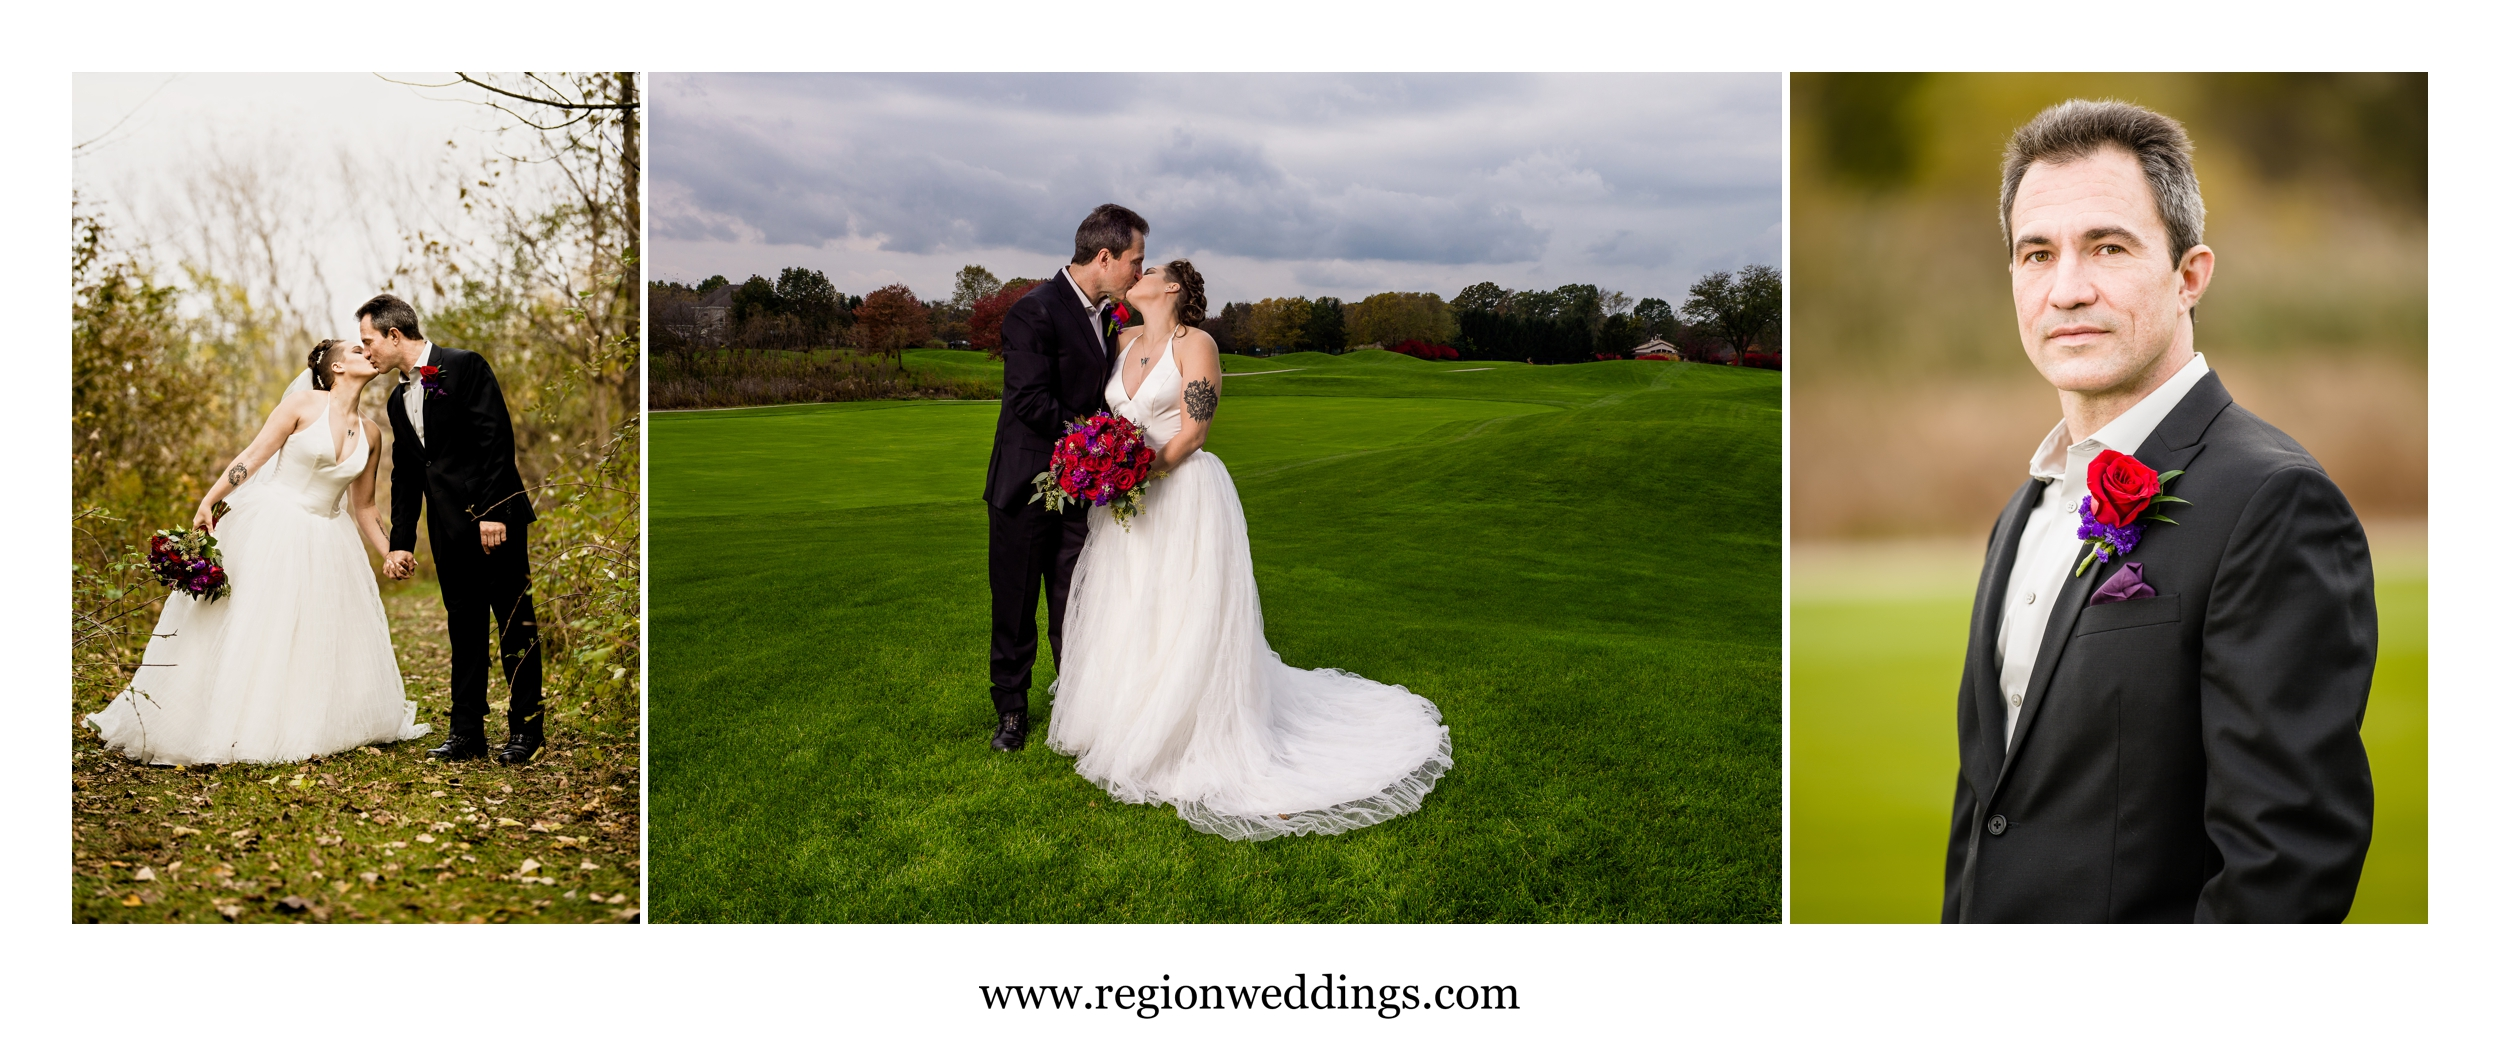 Wedding portraits at Sand Creek Country Club.